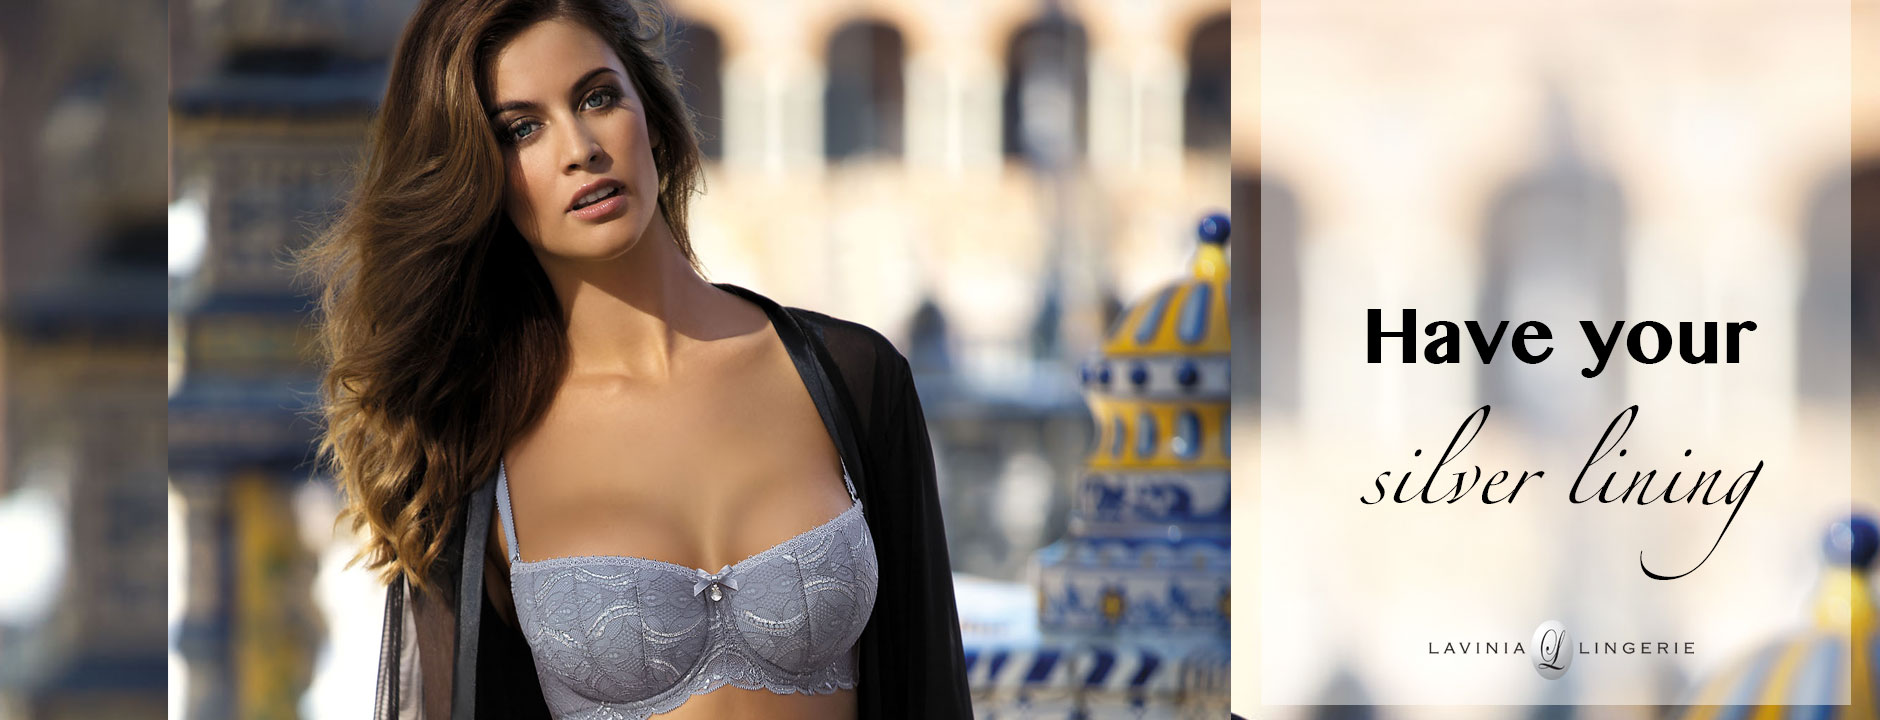 New In: Balconette With A Silver Lining | Available On Lavinia Lingerie